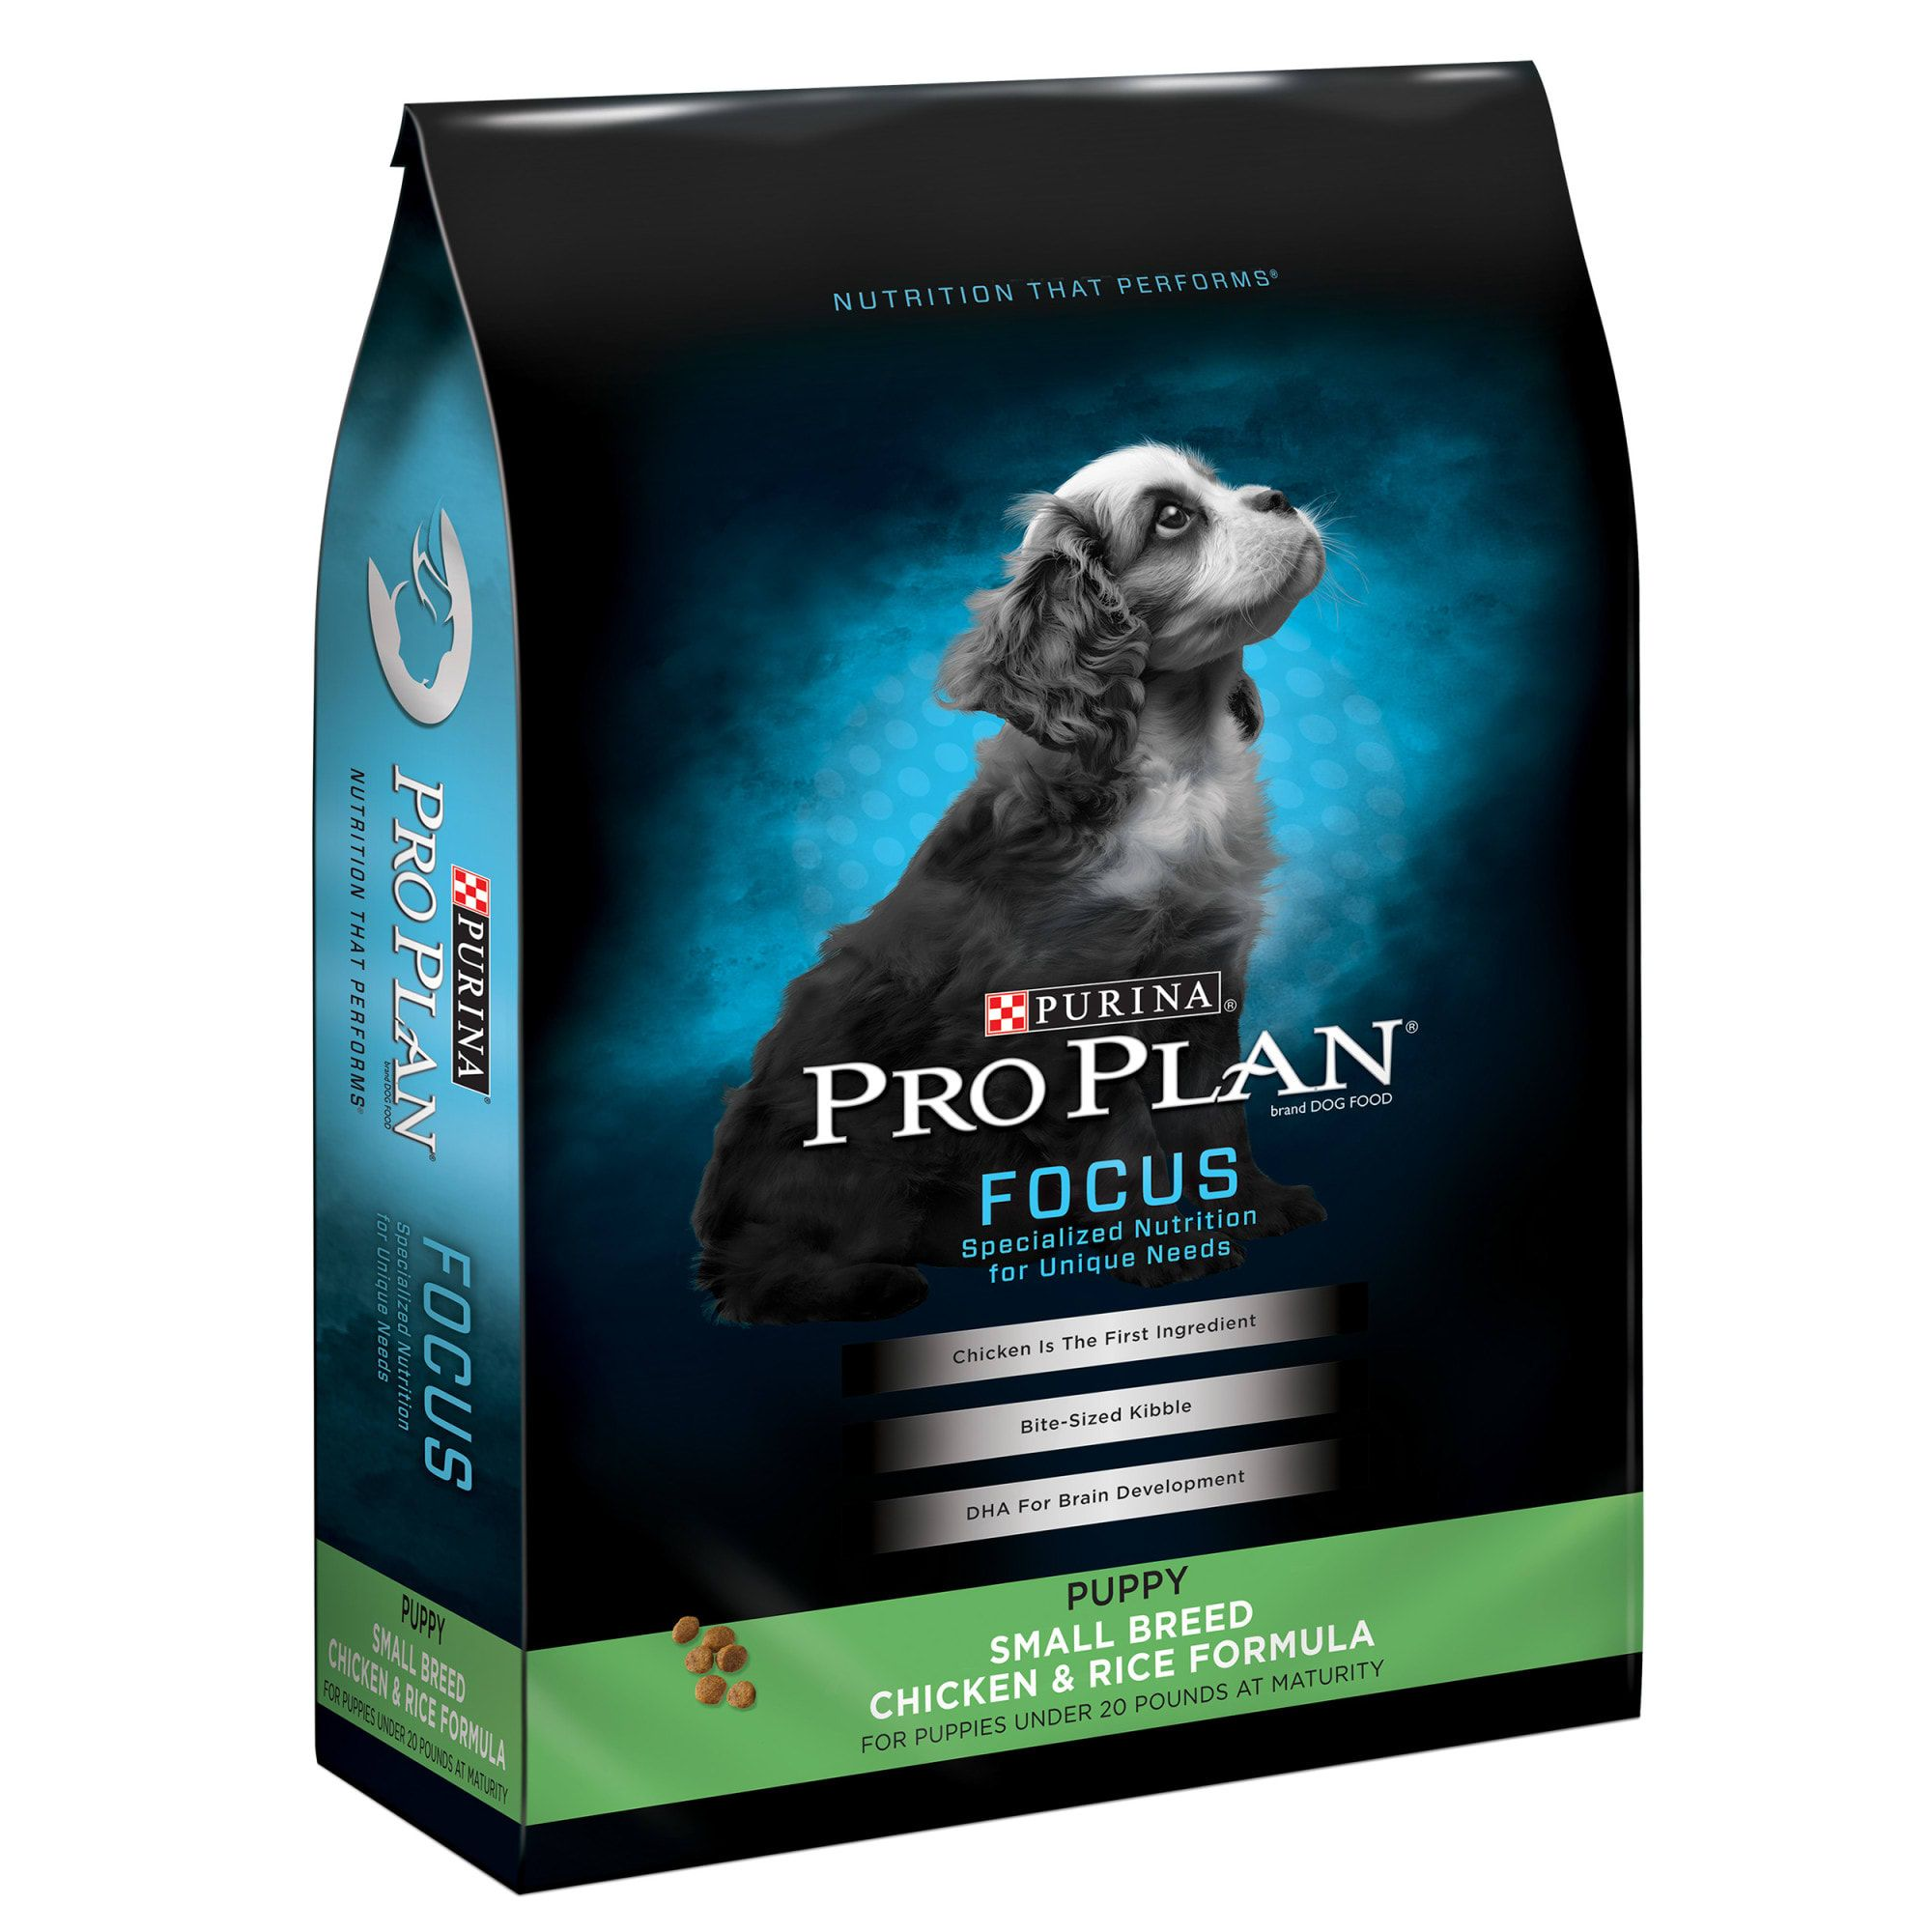 Purina Pro Plan High Protein Small Breed Chicken Rice Formula Dry Puppy Food 6 Lbs Petco In 2020 Small Breed Puppy Food Purina